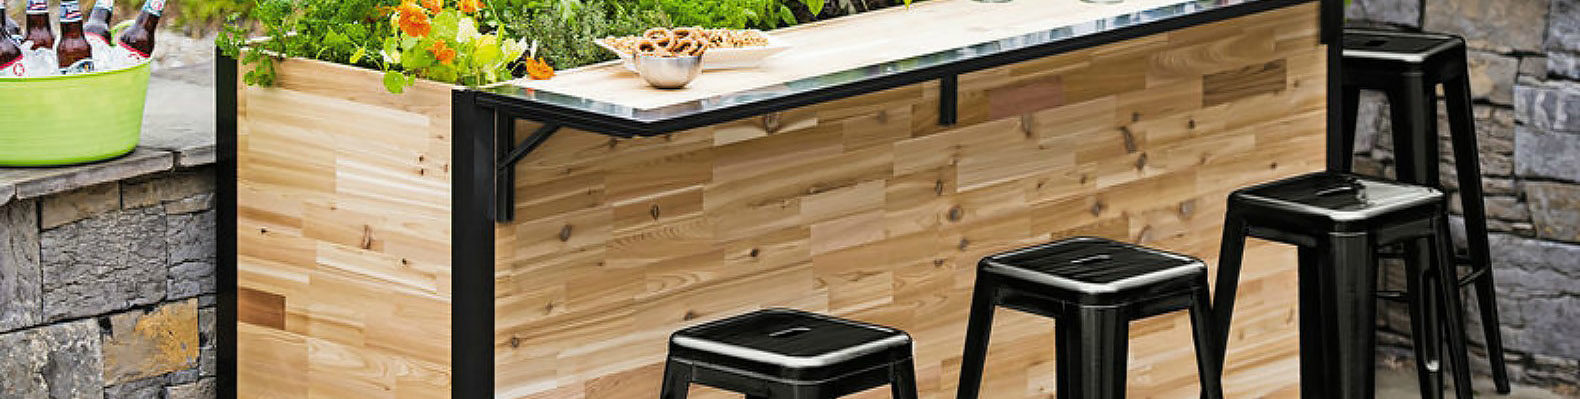 Plant A Bar An Outdoor Made With Reclaimed Wood That Doubles As Planter